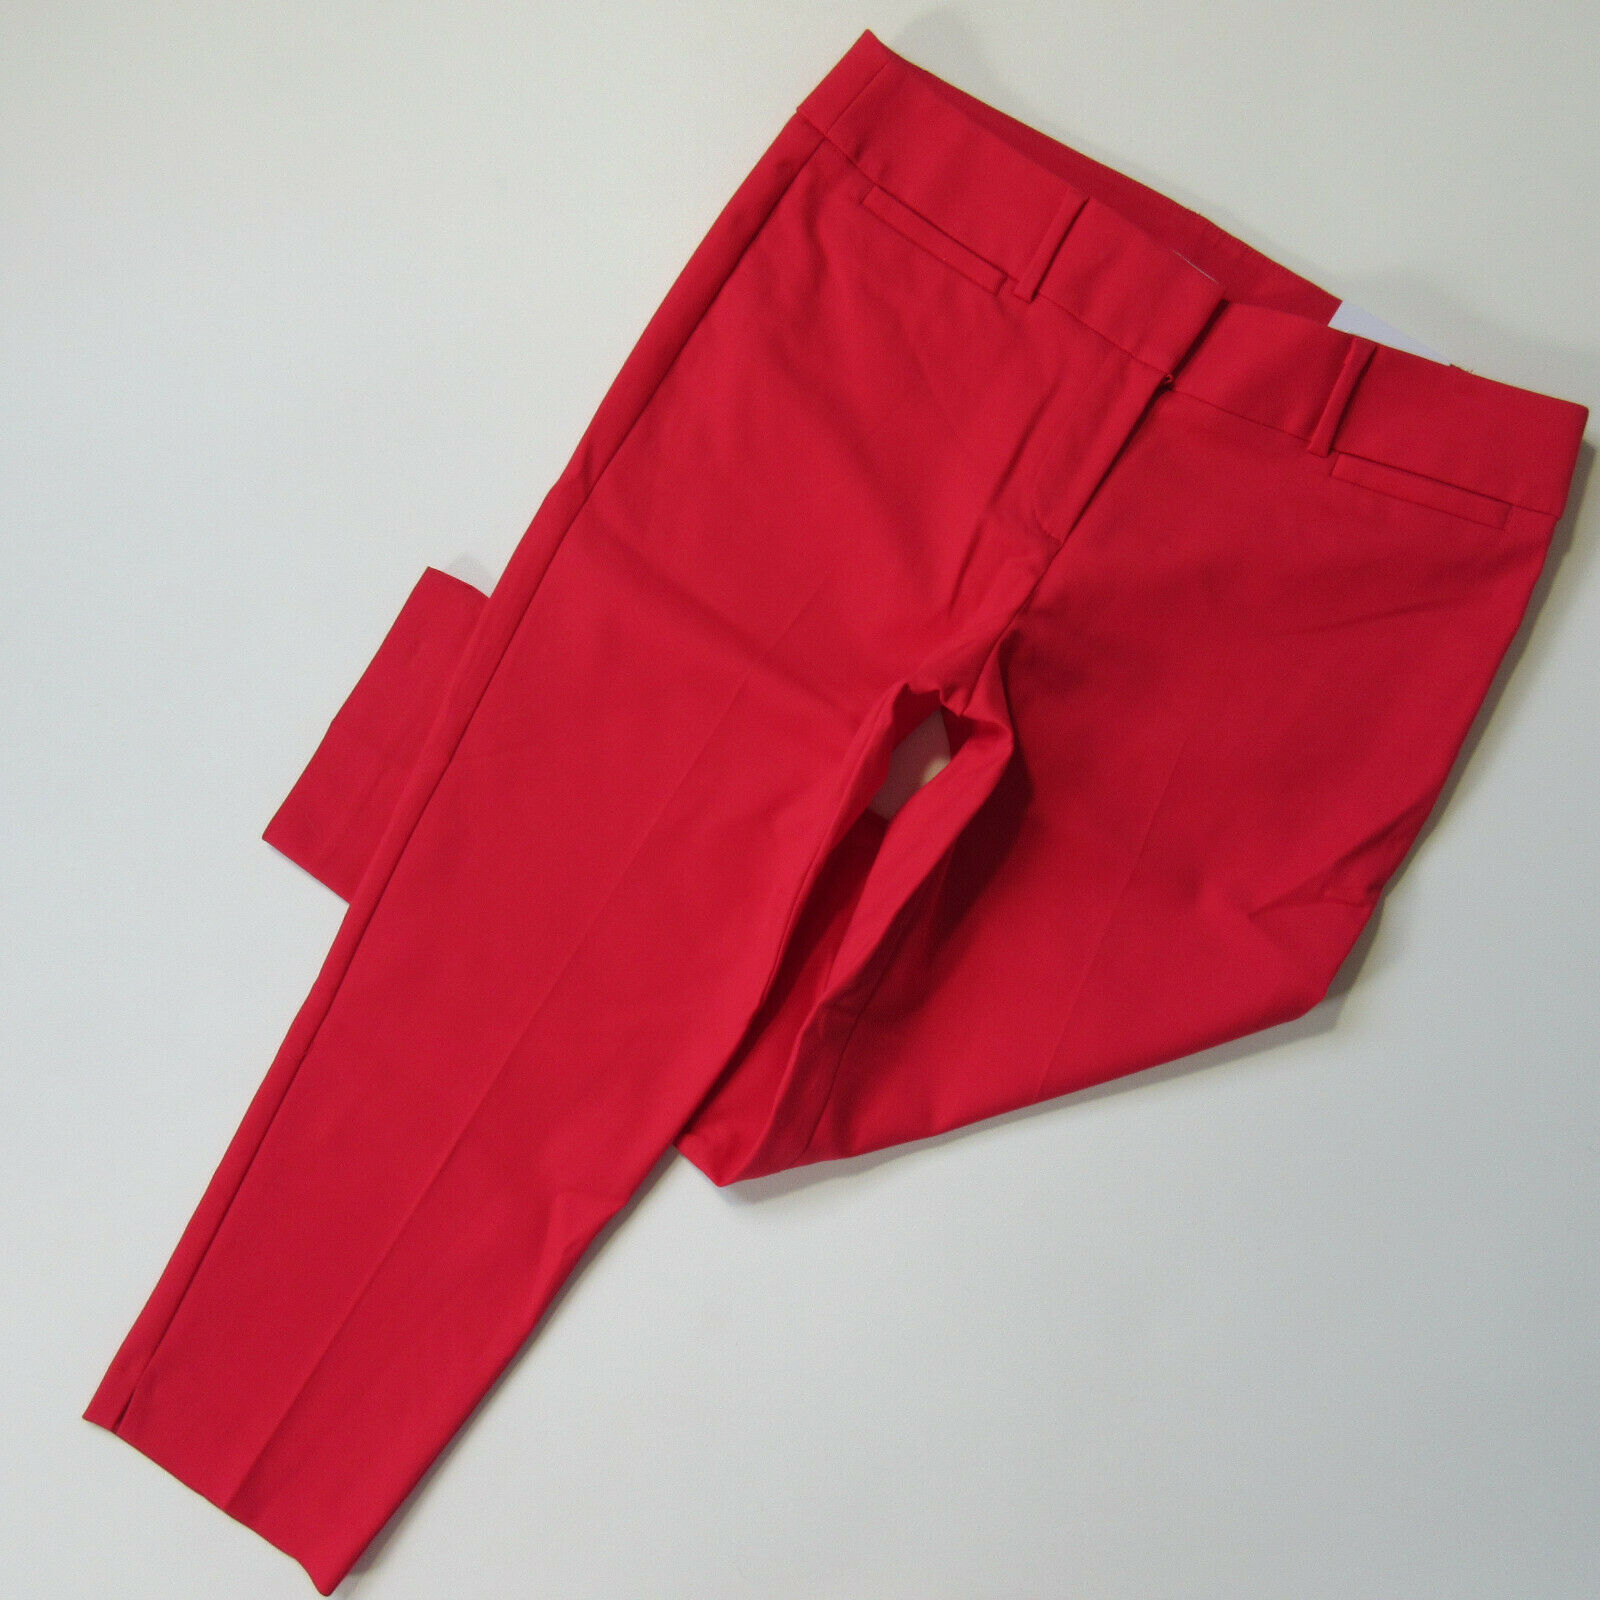 Primary image for NWT Ann Taylor LOFT Marisa Riviera in Watermelon Red Stretch Cotton Crop Pants 8